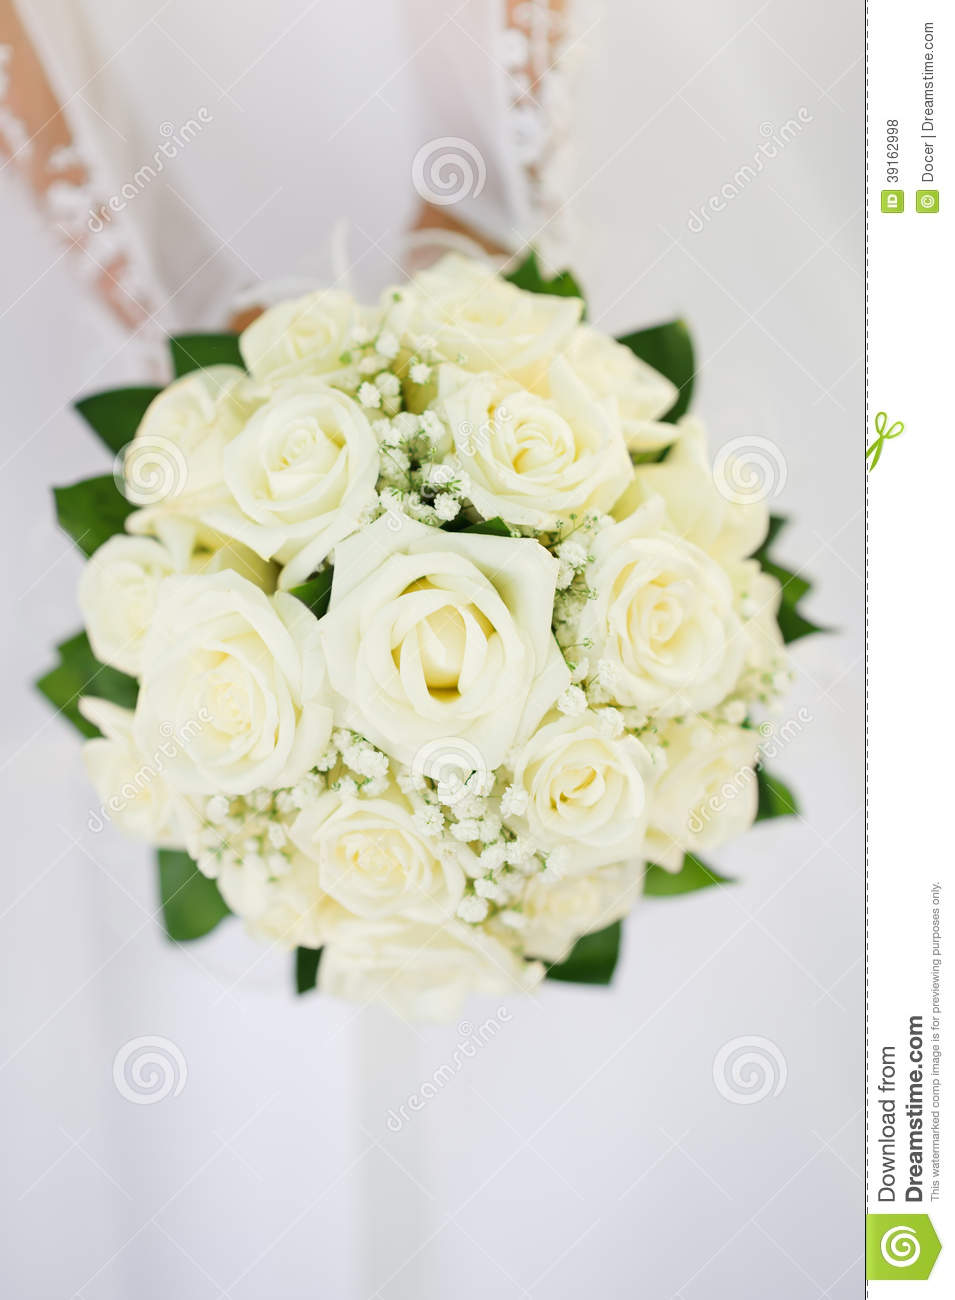 Wedding Bouquet With Many White Roses In Hands Stock Photo Image